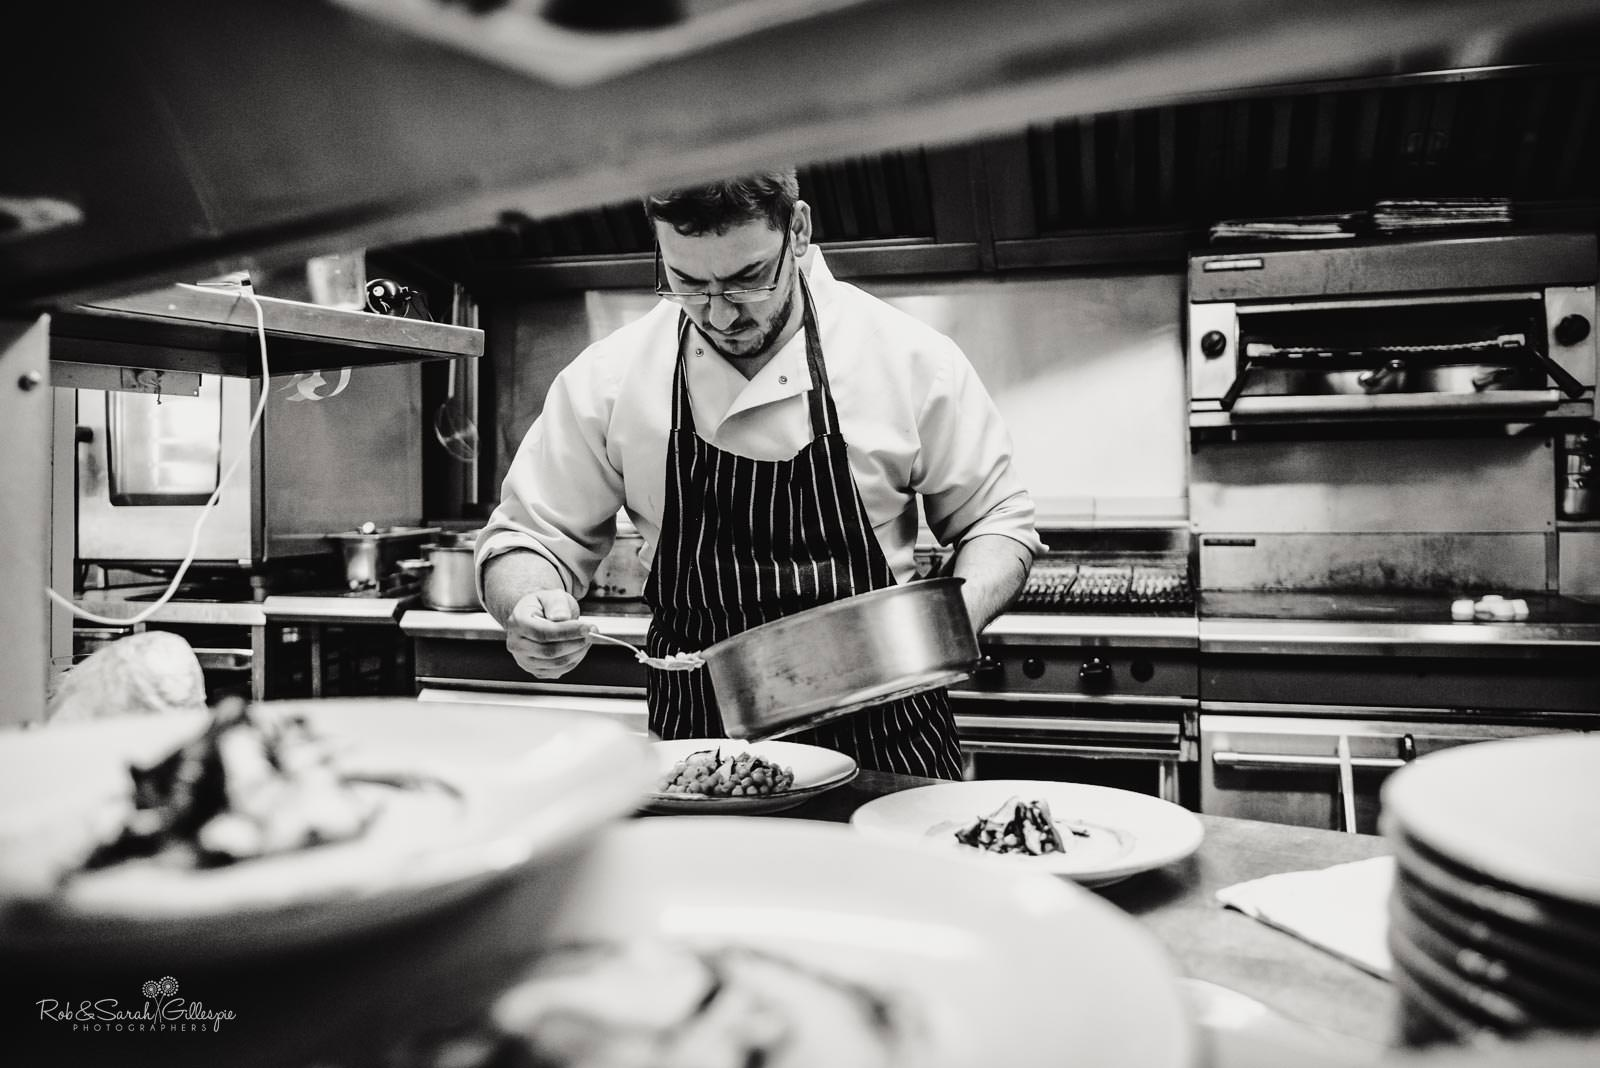 Chef prepares wedding meal at Townhouse in Stratford upon Avon